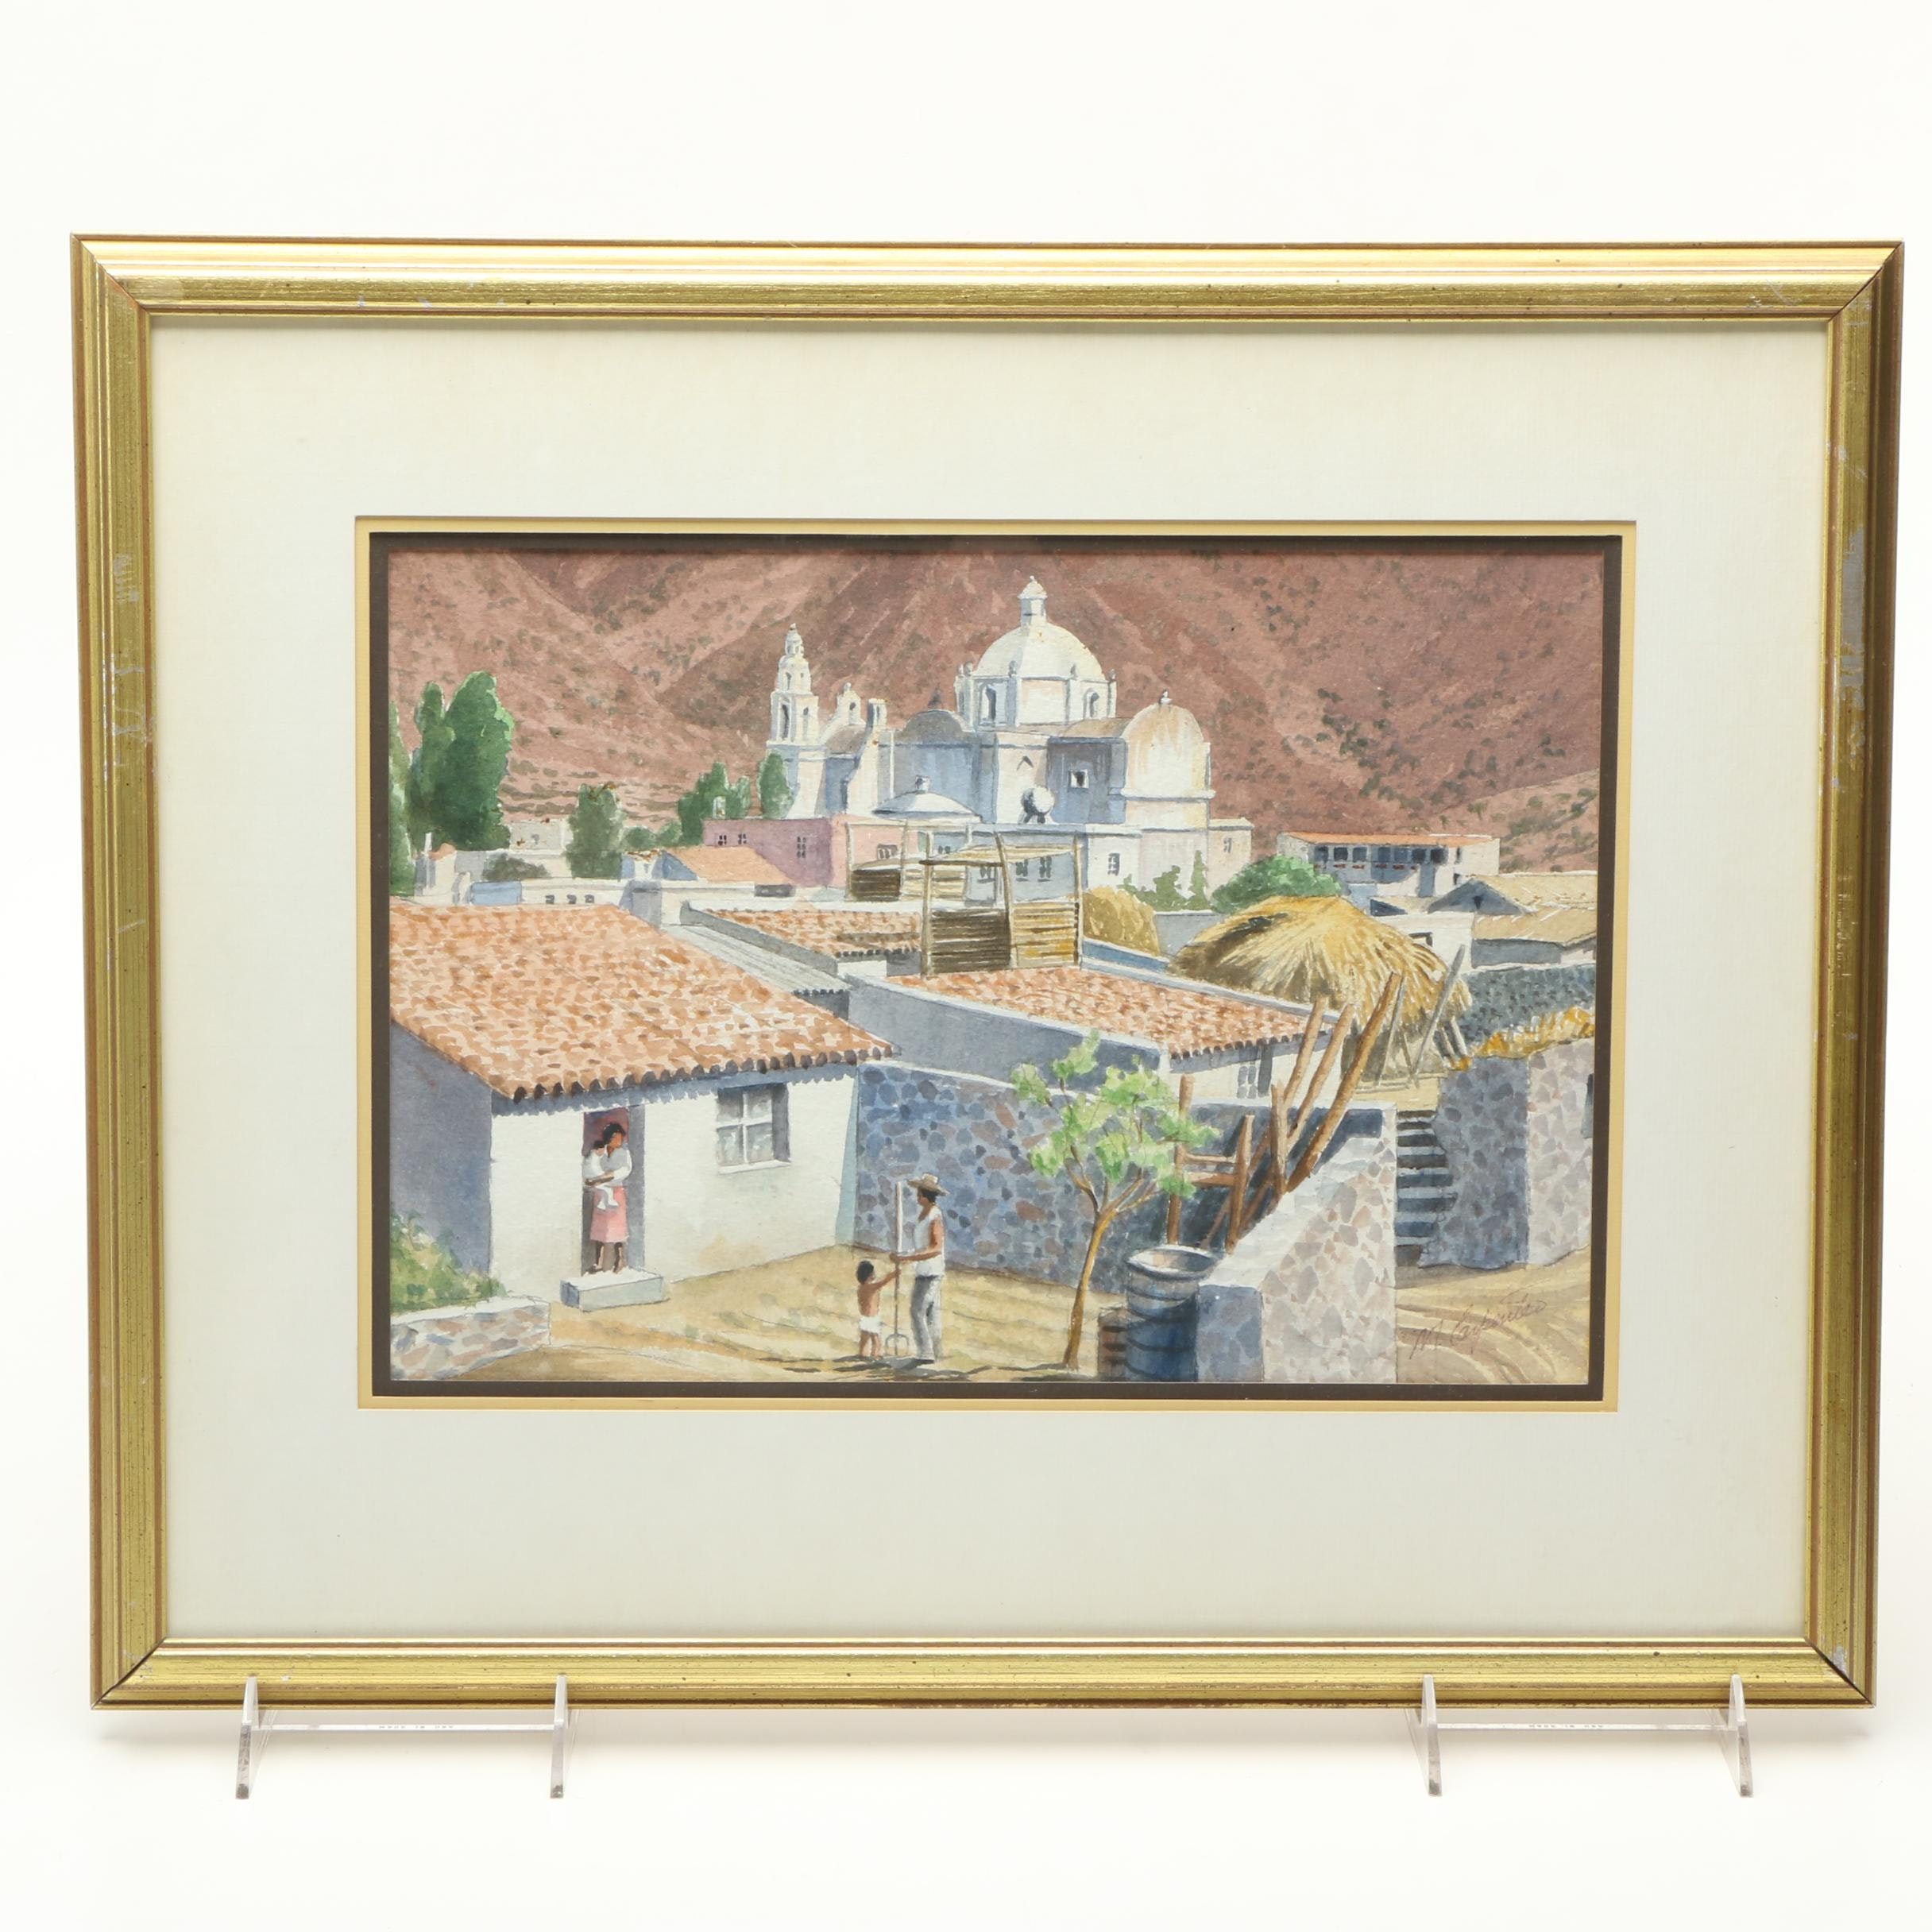 M. Carpenter Watercolor Painting on Paper of Village